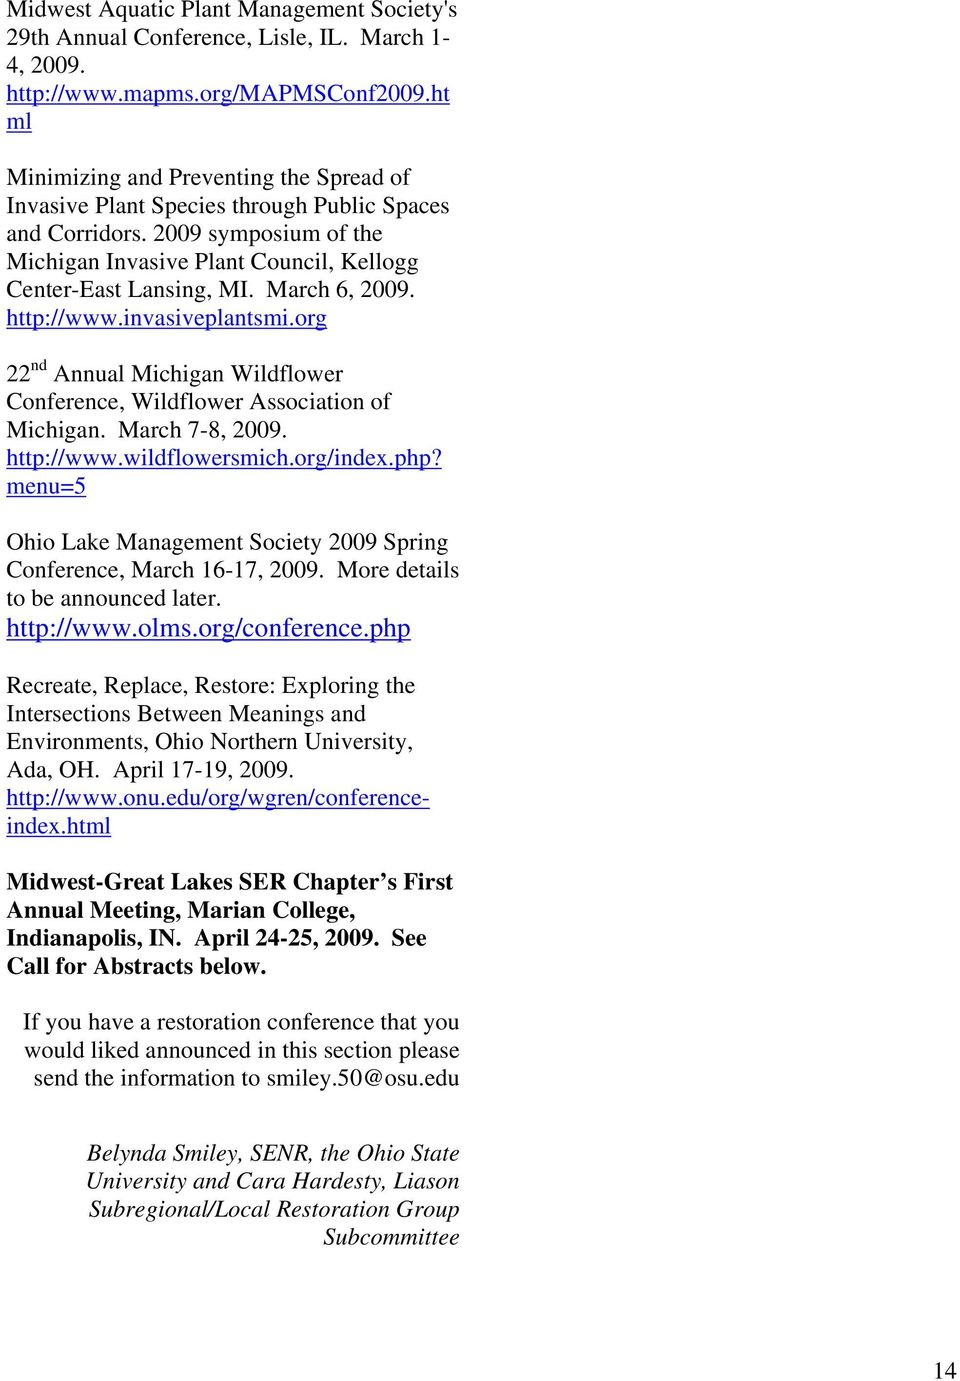 March 6, 2009. http://www.invasiveplantsmi.org 22 nd Annual Michigan Wildflower Conference, Wildflower Association of Michigan. March 7-8, 2009. http://www.wildflowersmich.org/index.php?